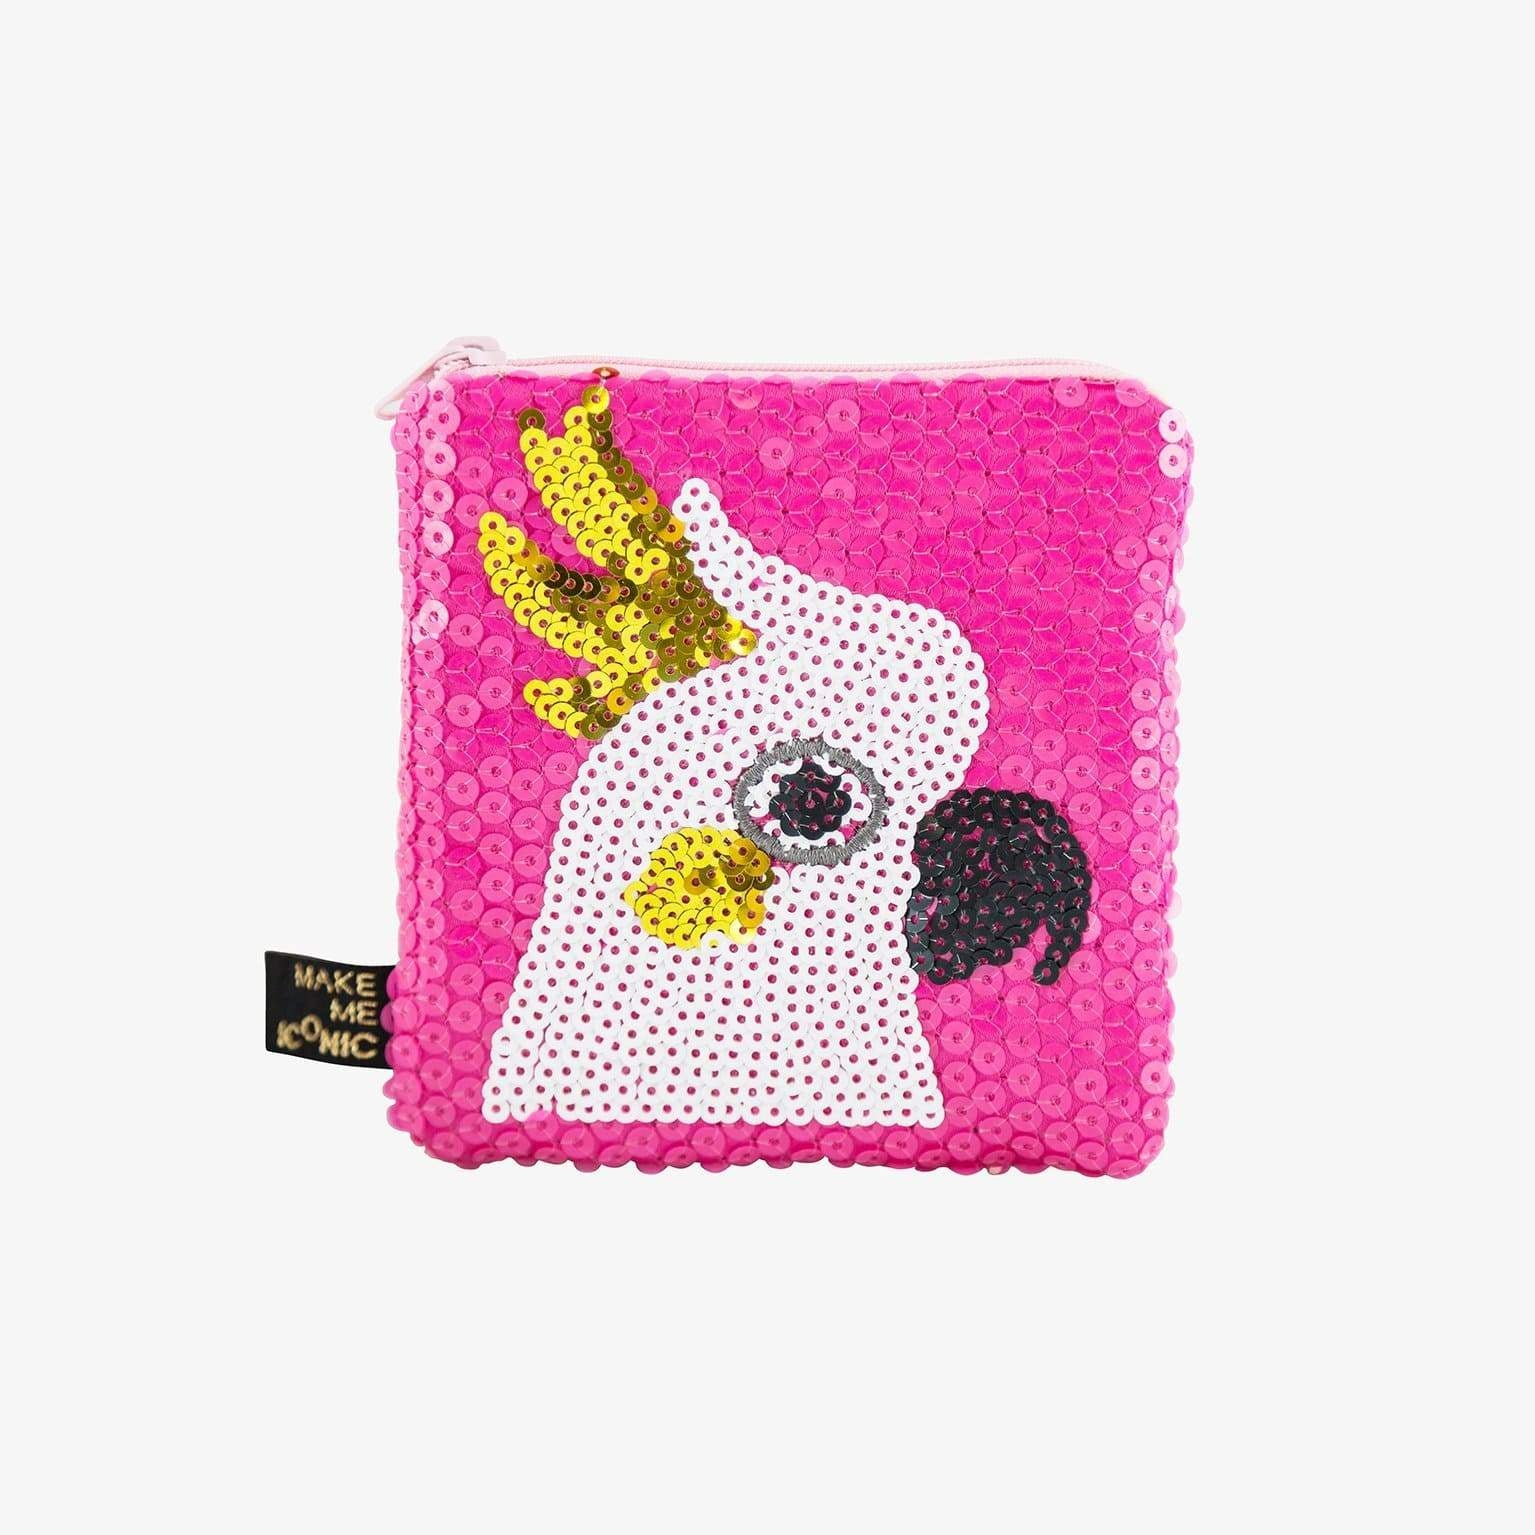 Make me Iconic Accessories Sequin Purse - Cockatoo